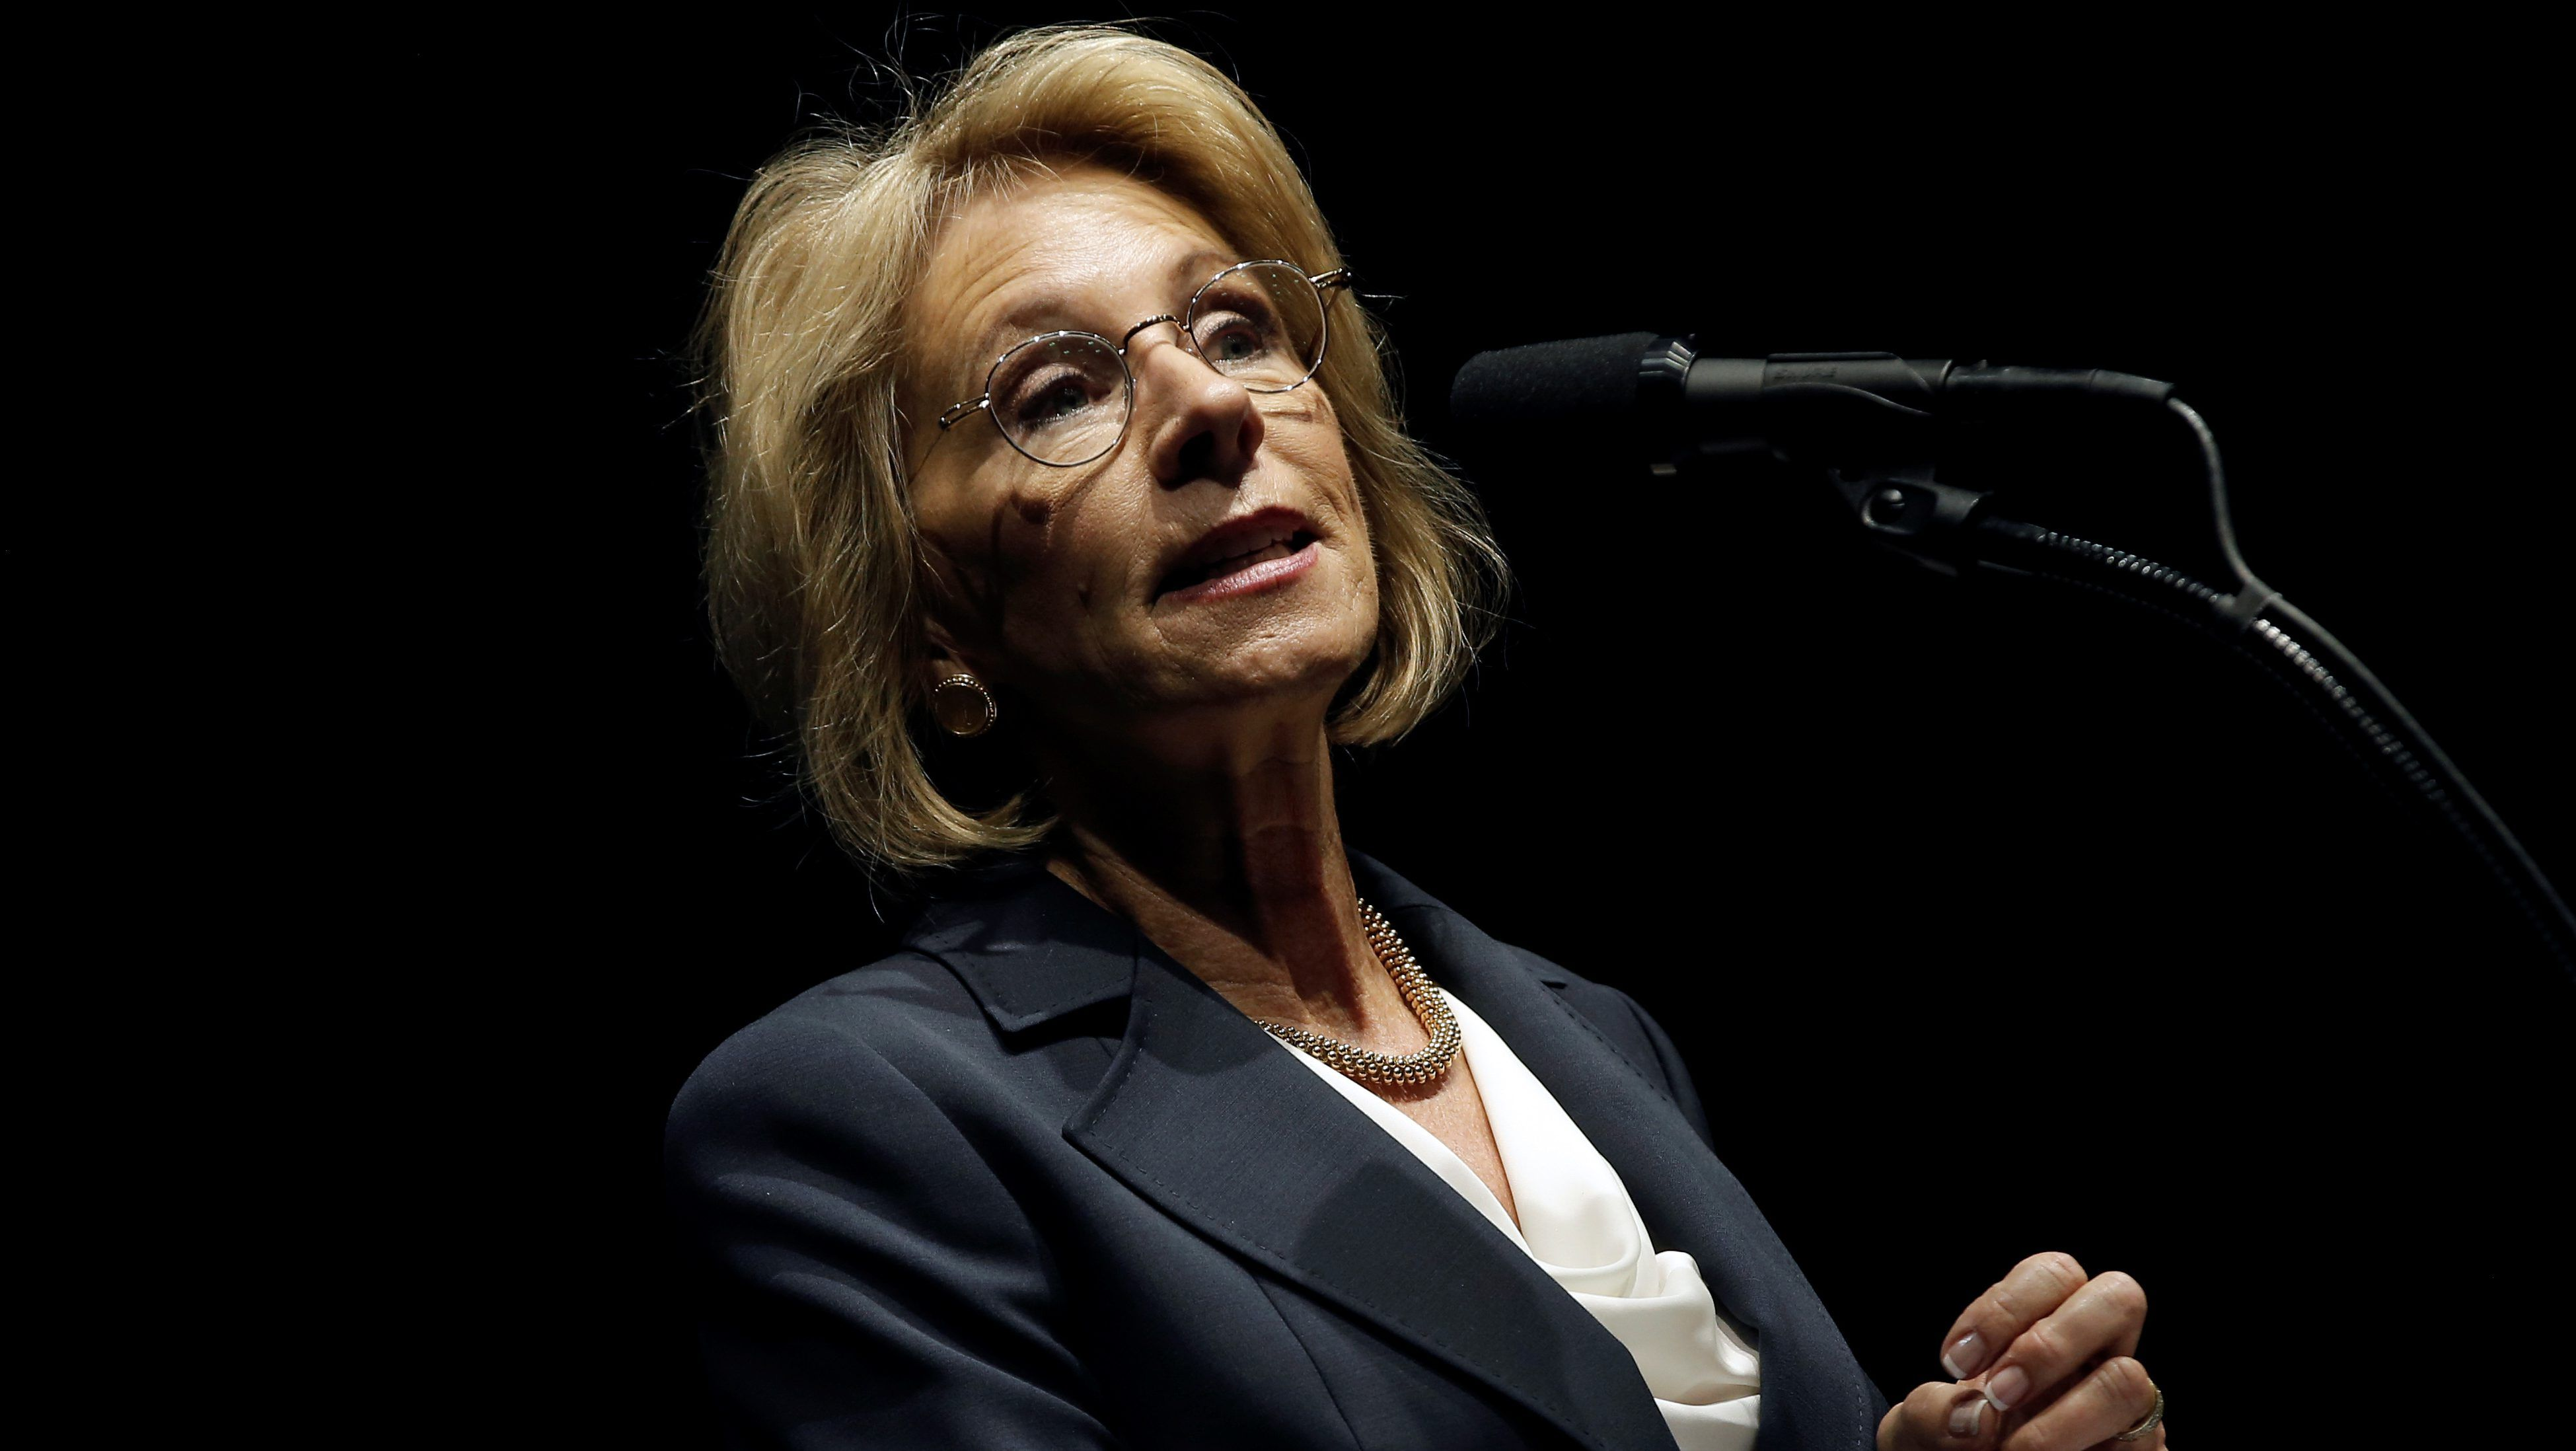 Betsy Devos Is Just Plain Wrong >> Betsy Devos Needs An Education On Ethics Nationofchange